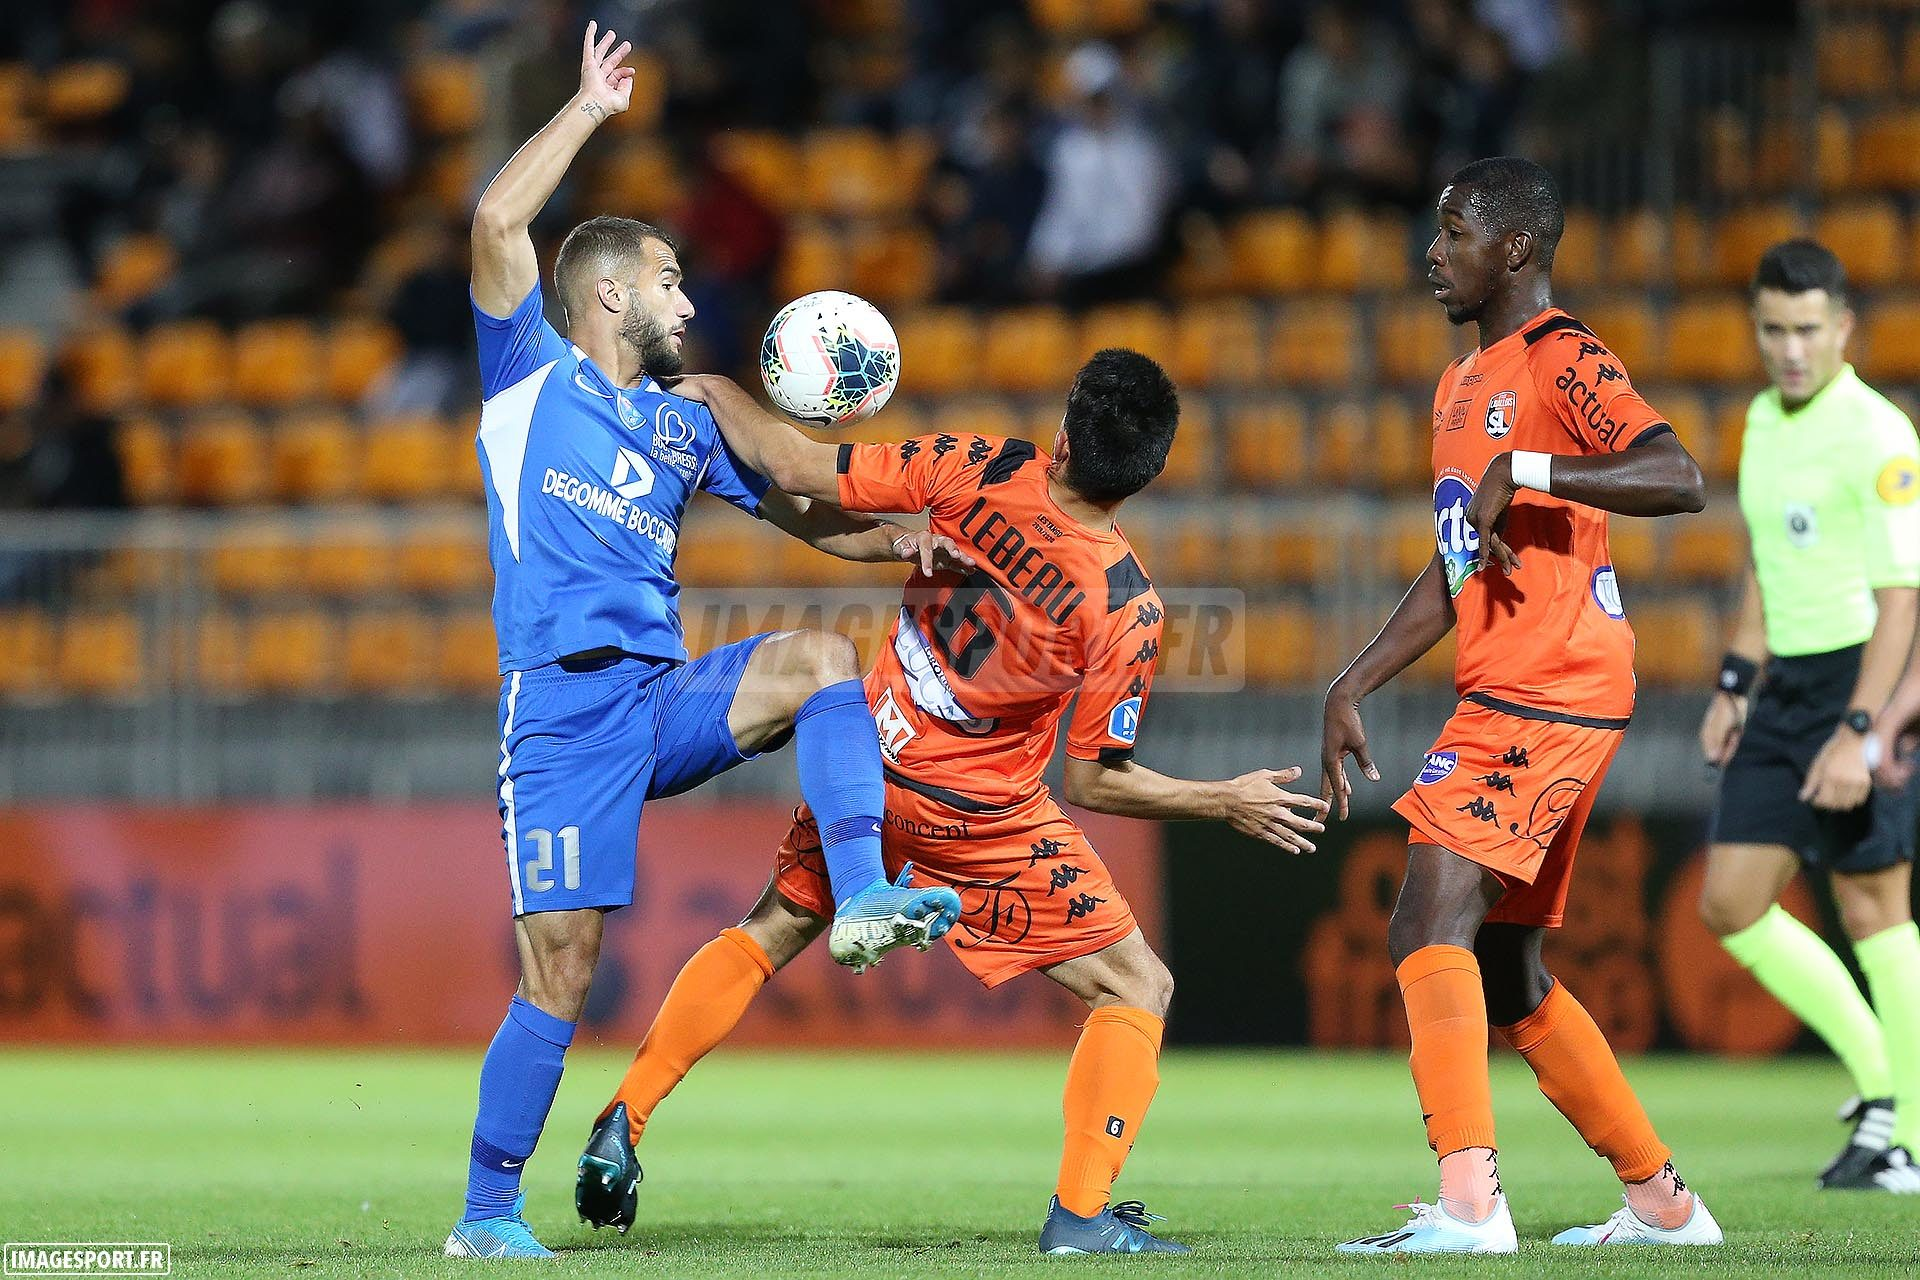 national-stade-lavallois-fbbp01-2019-2020_07